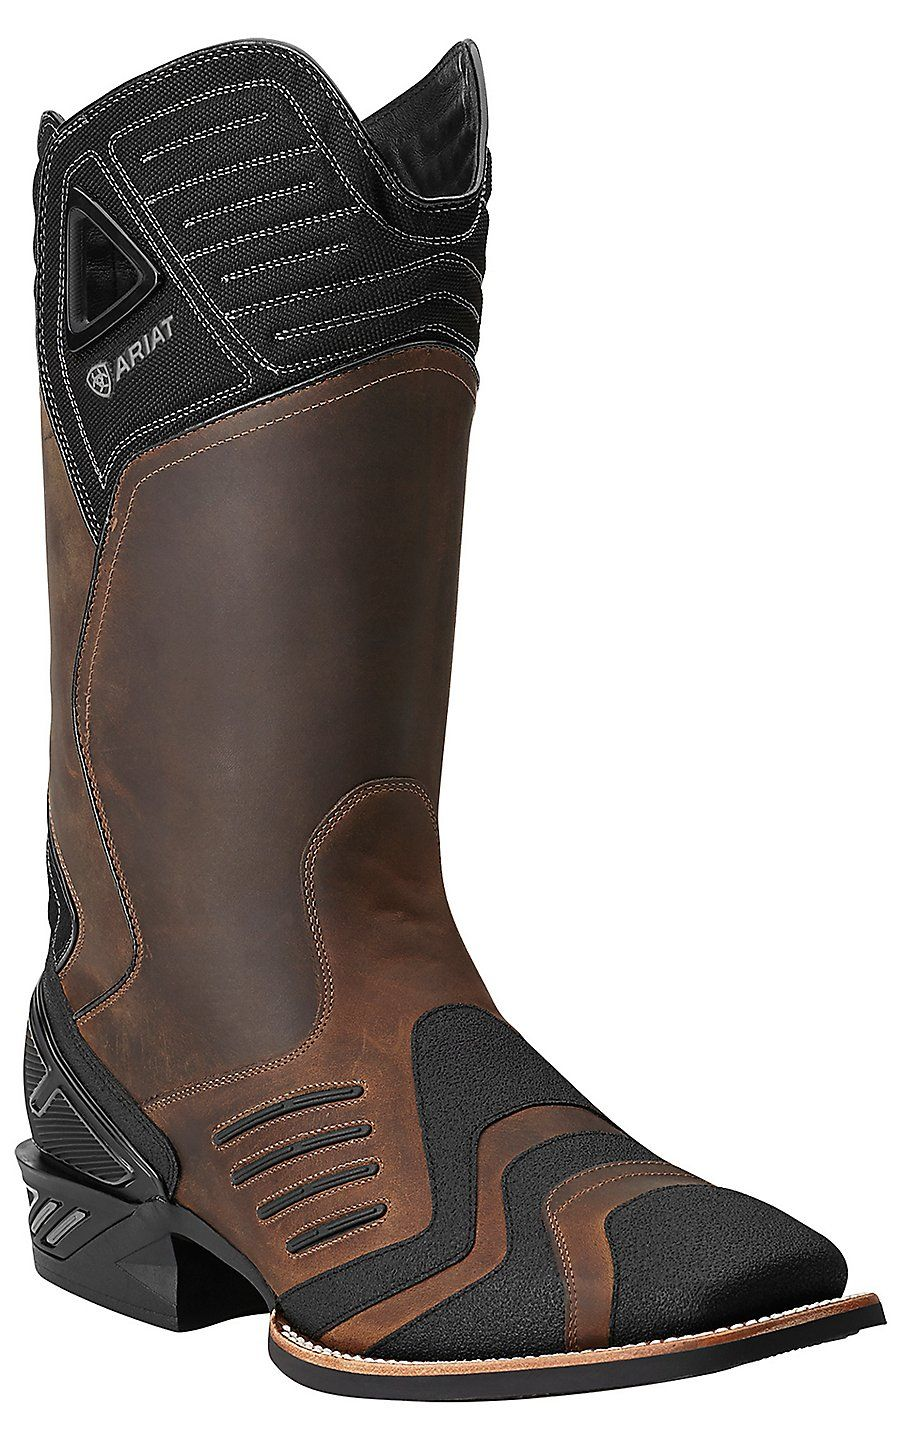 35 best ideas about Boots on Pinterest